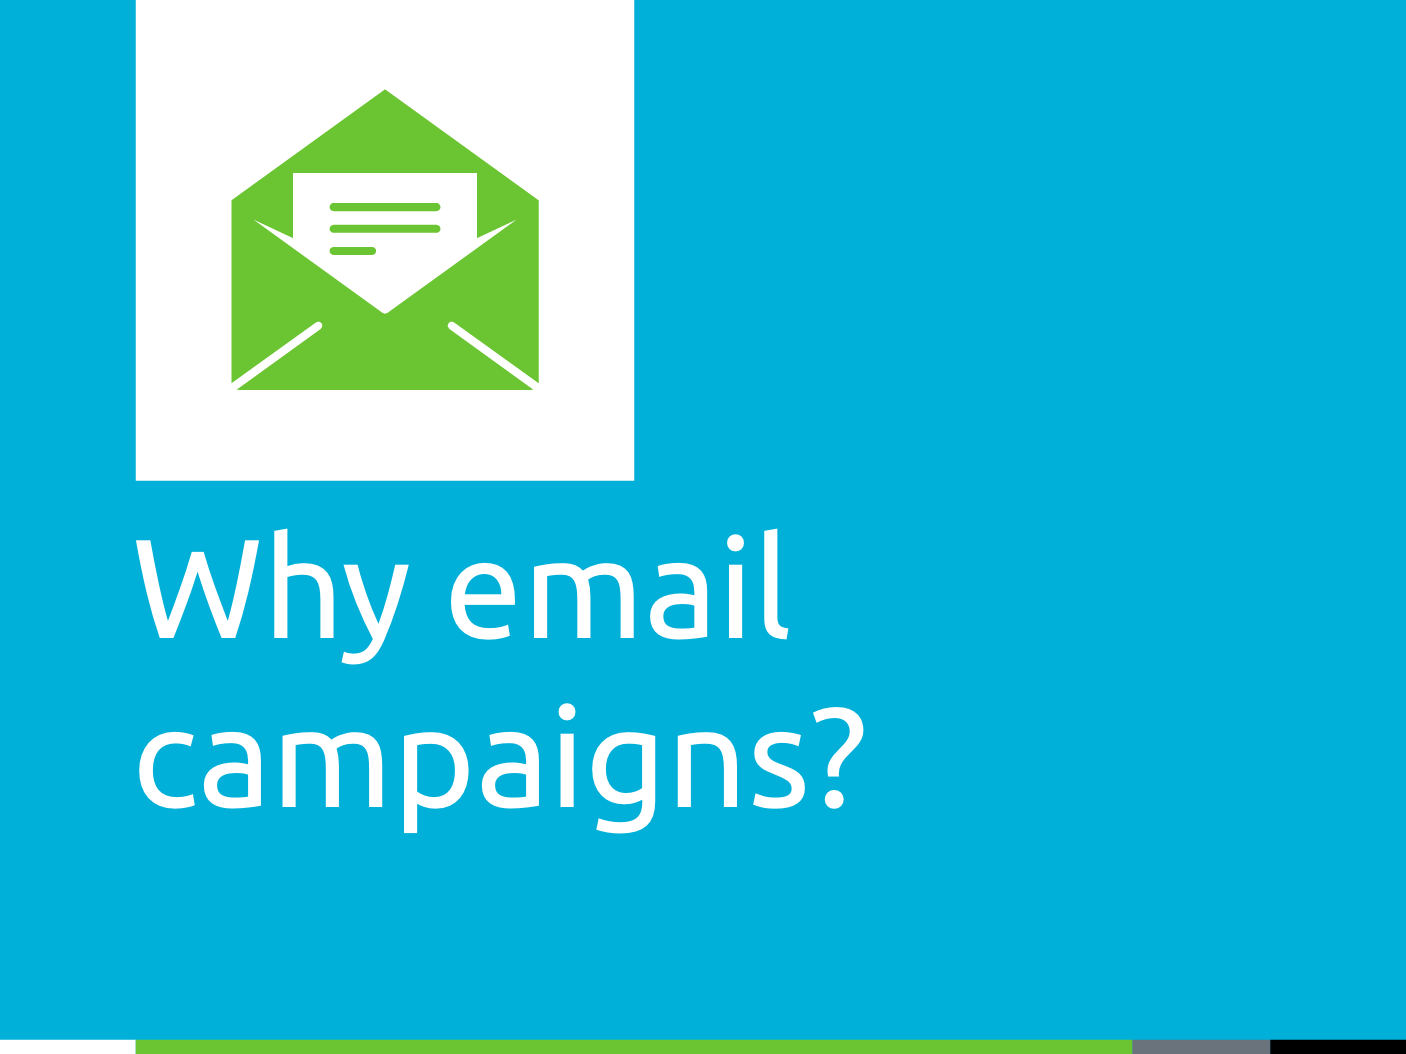 Email campaigns for open enrollment season